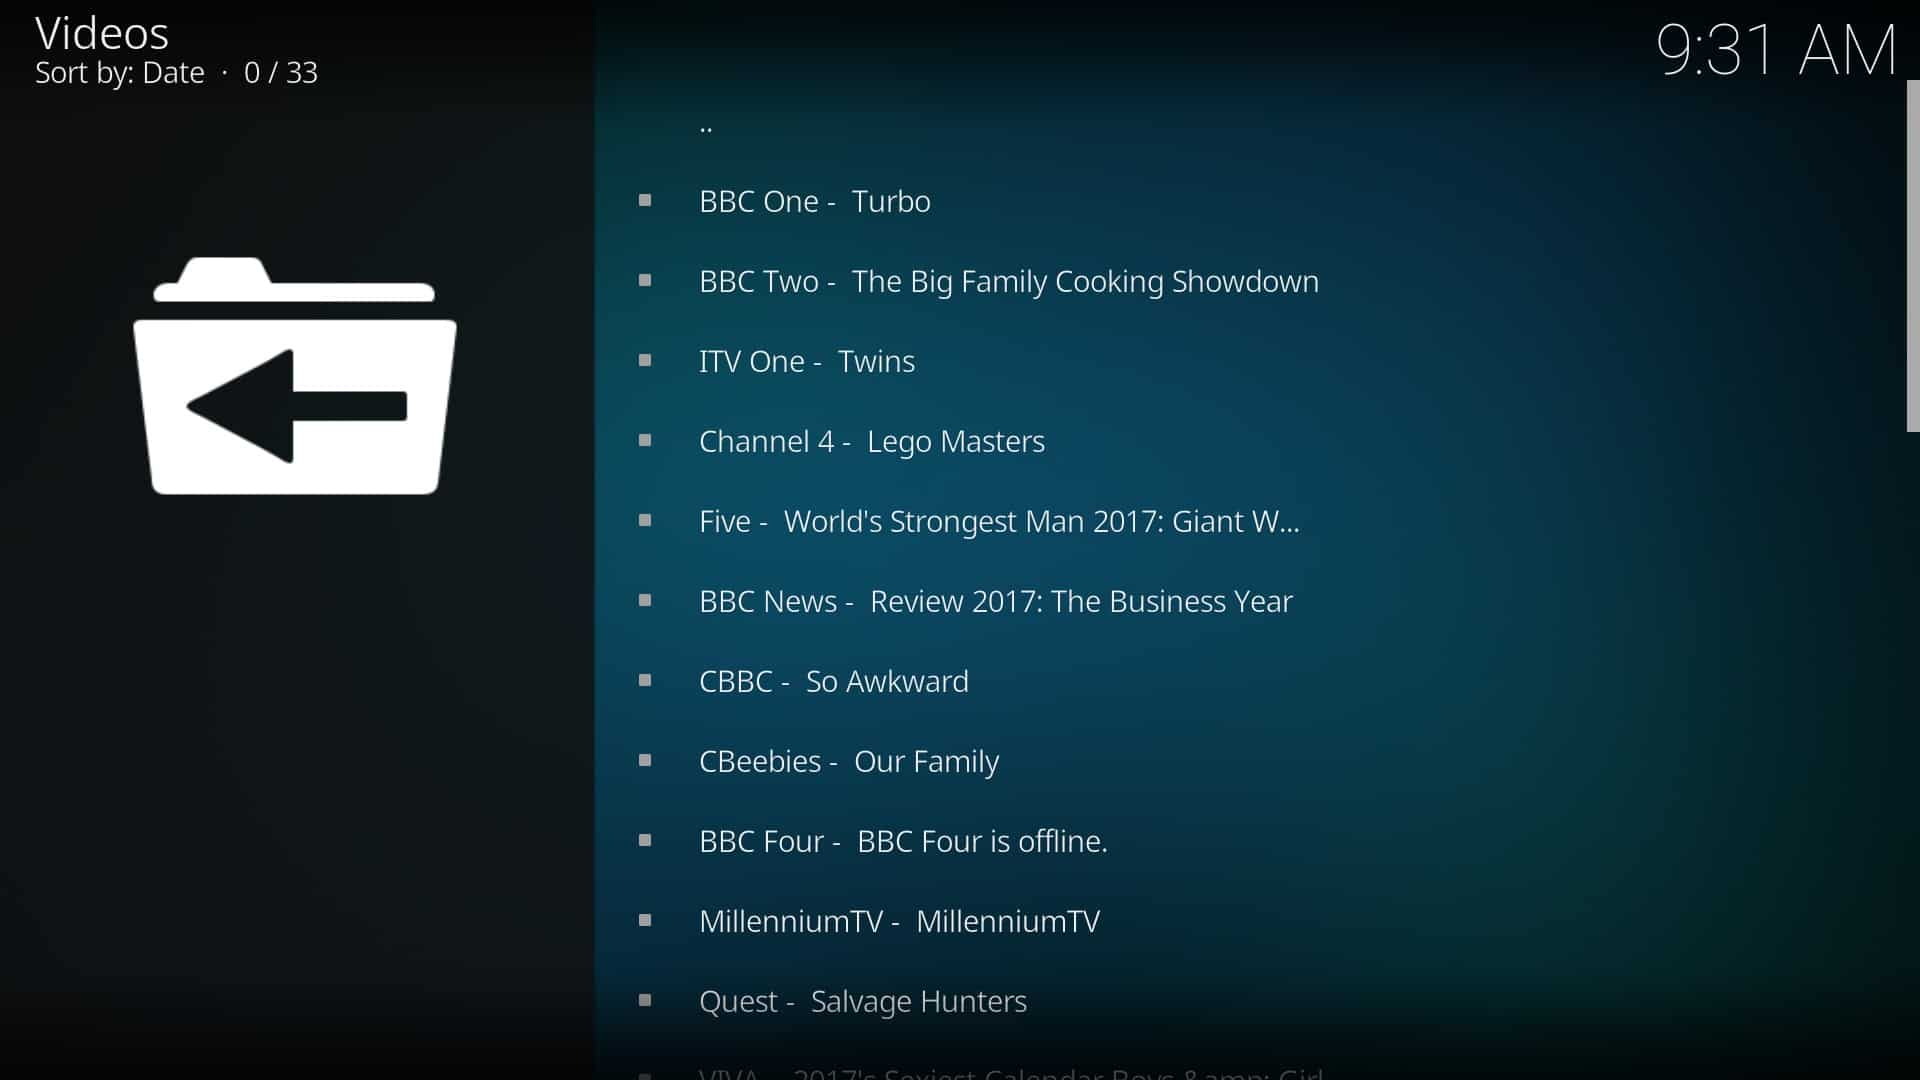 How to install + use TVCatchup Kodi addon safely & legally